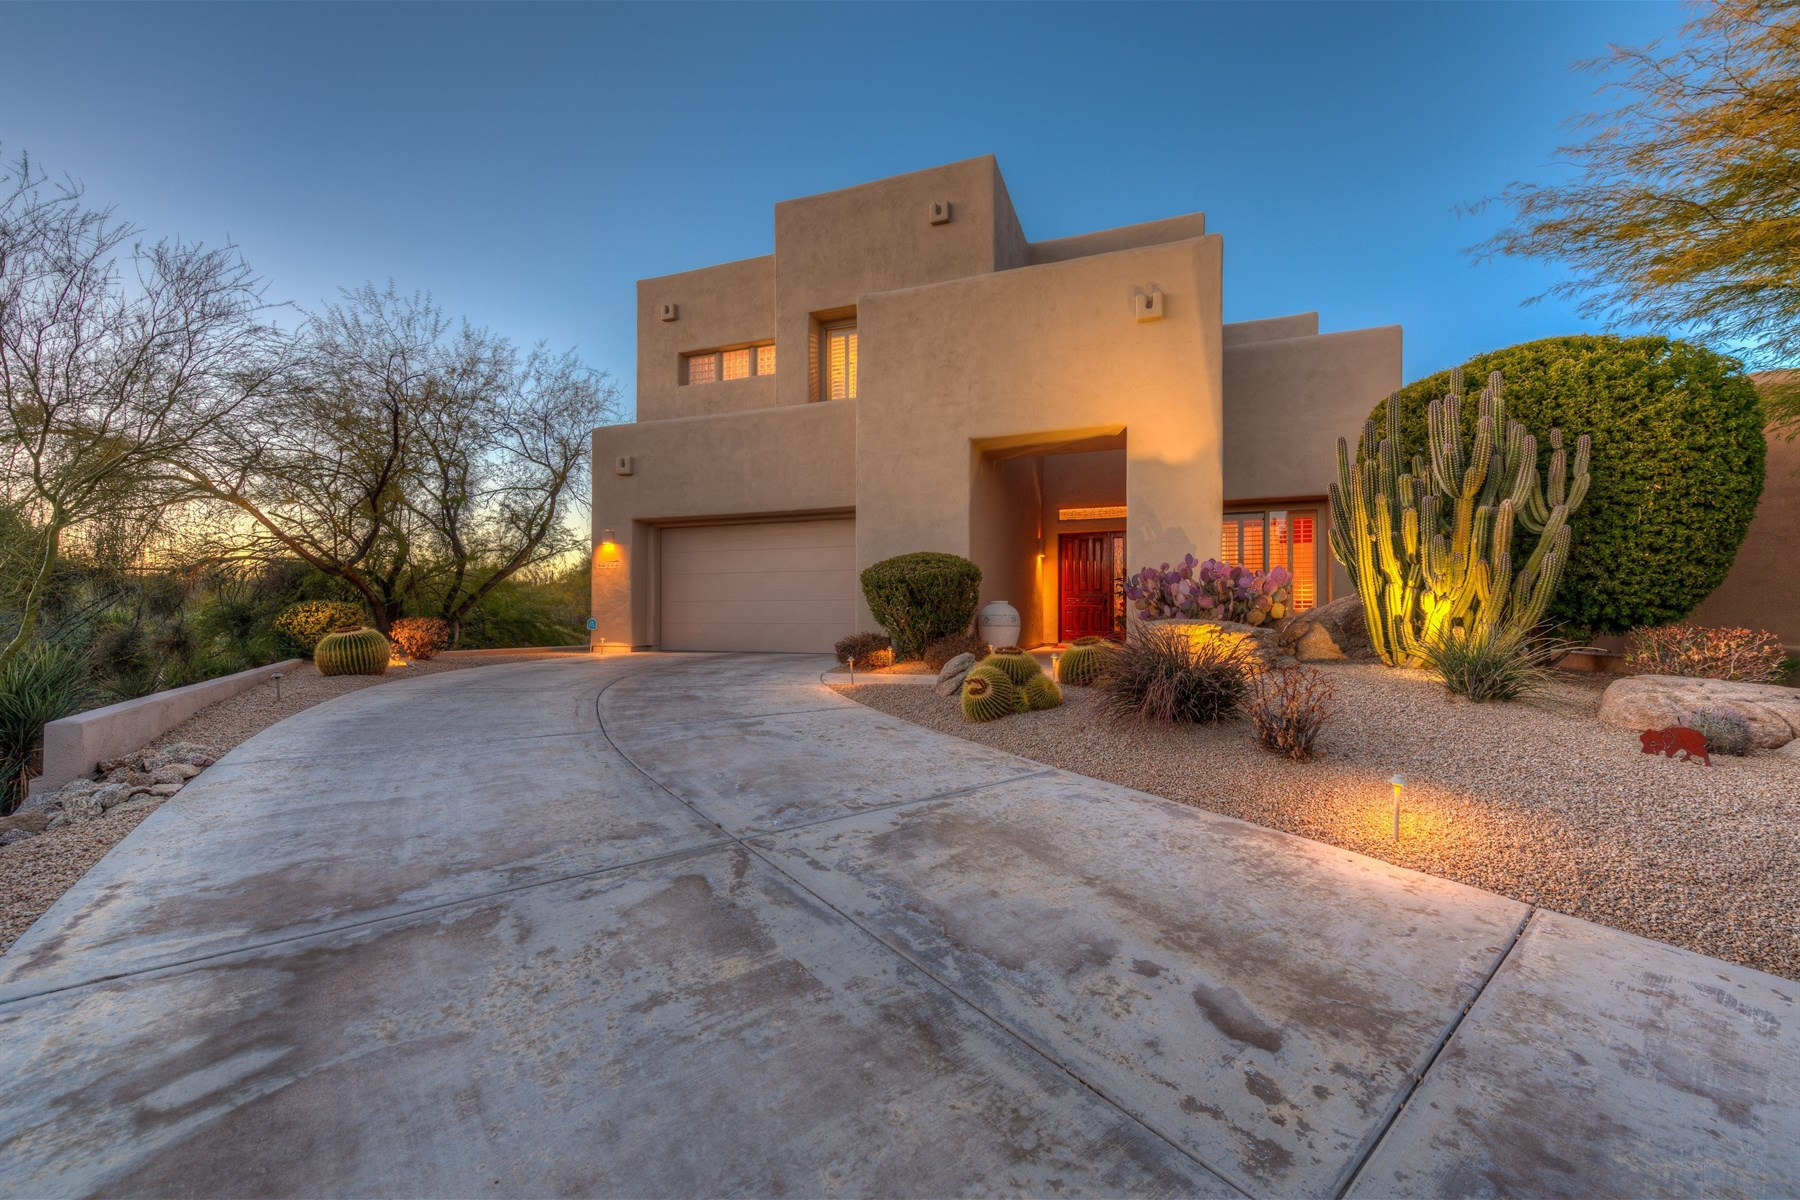 Single Family Home for Sale at Immaculate territorial-inspired home 10772 E Running Deer Trail Scottsdale, Arizona, 85262 United States